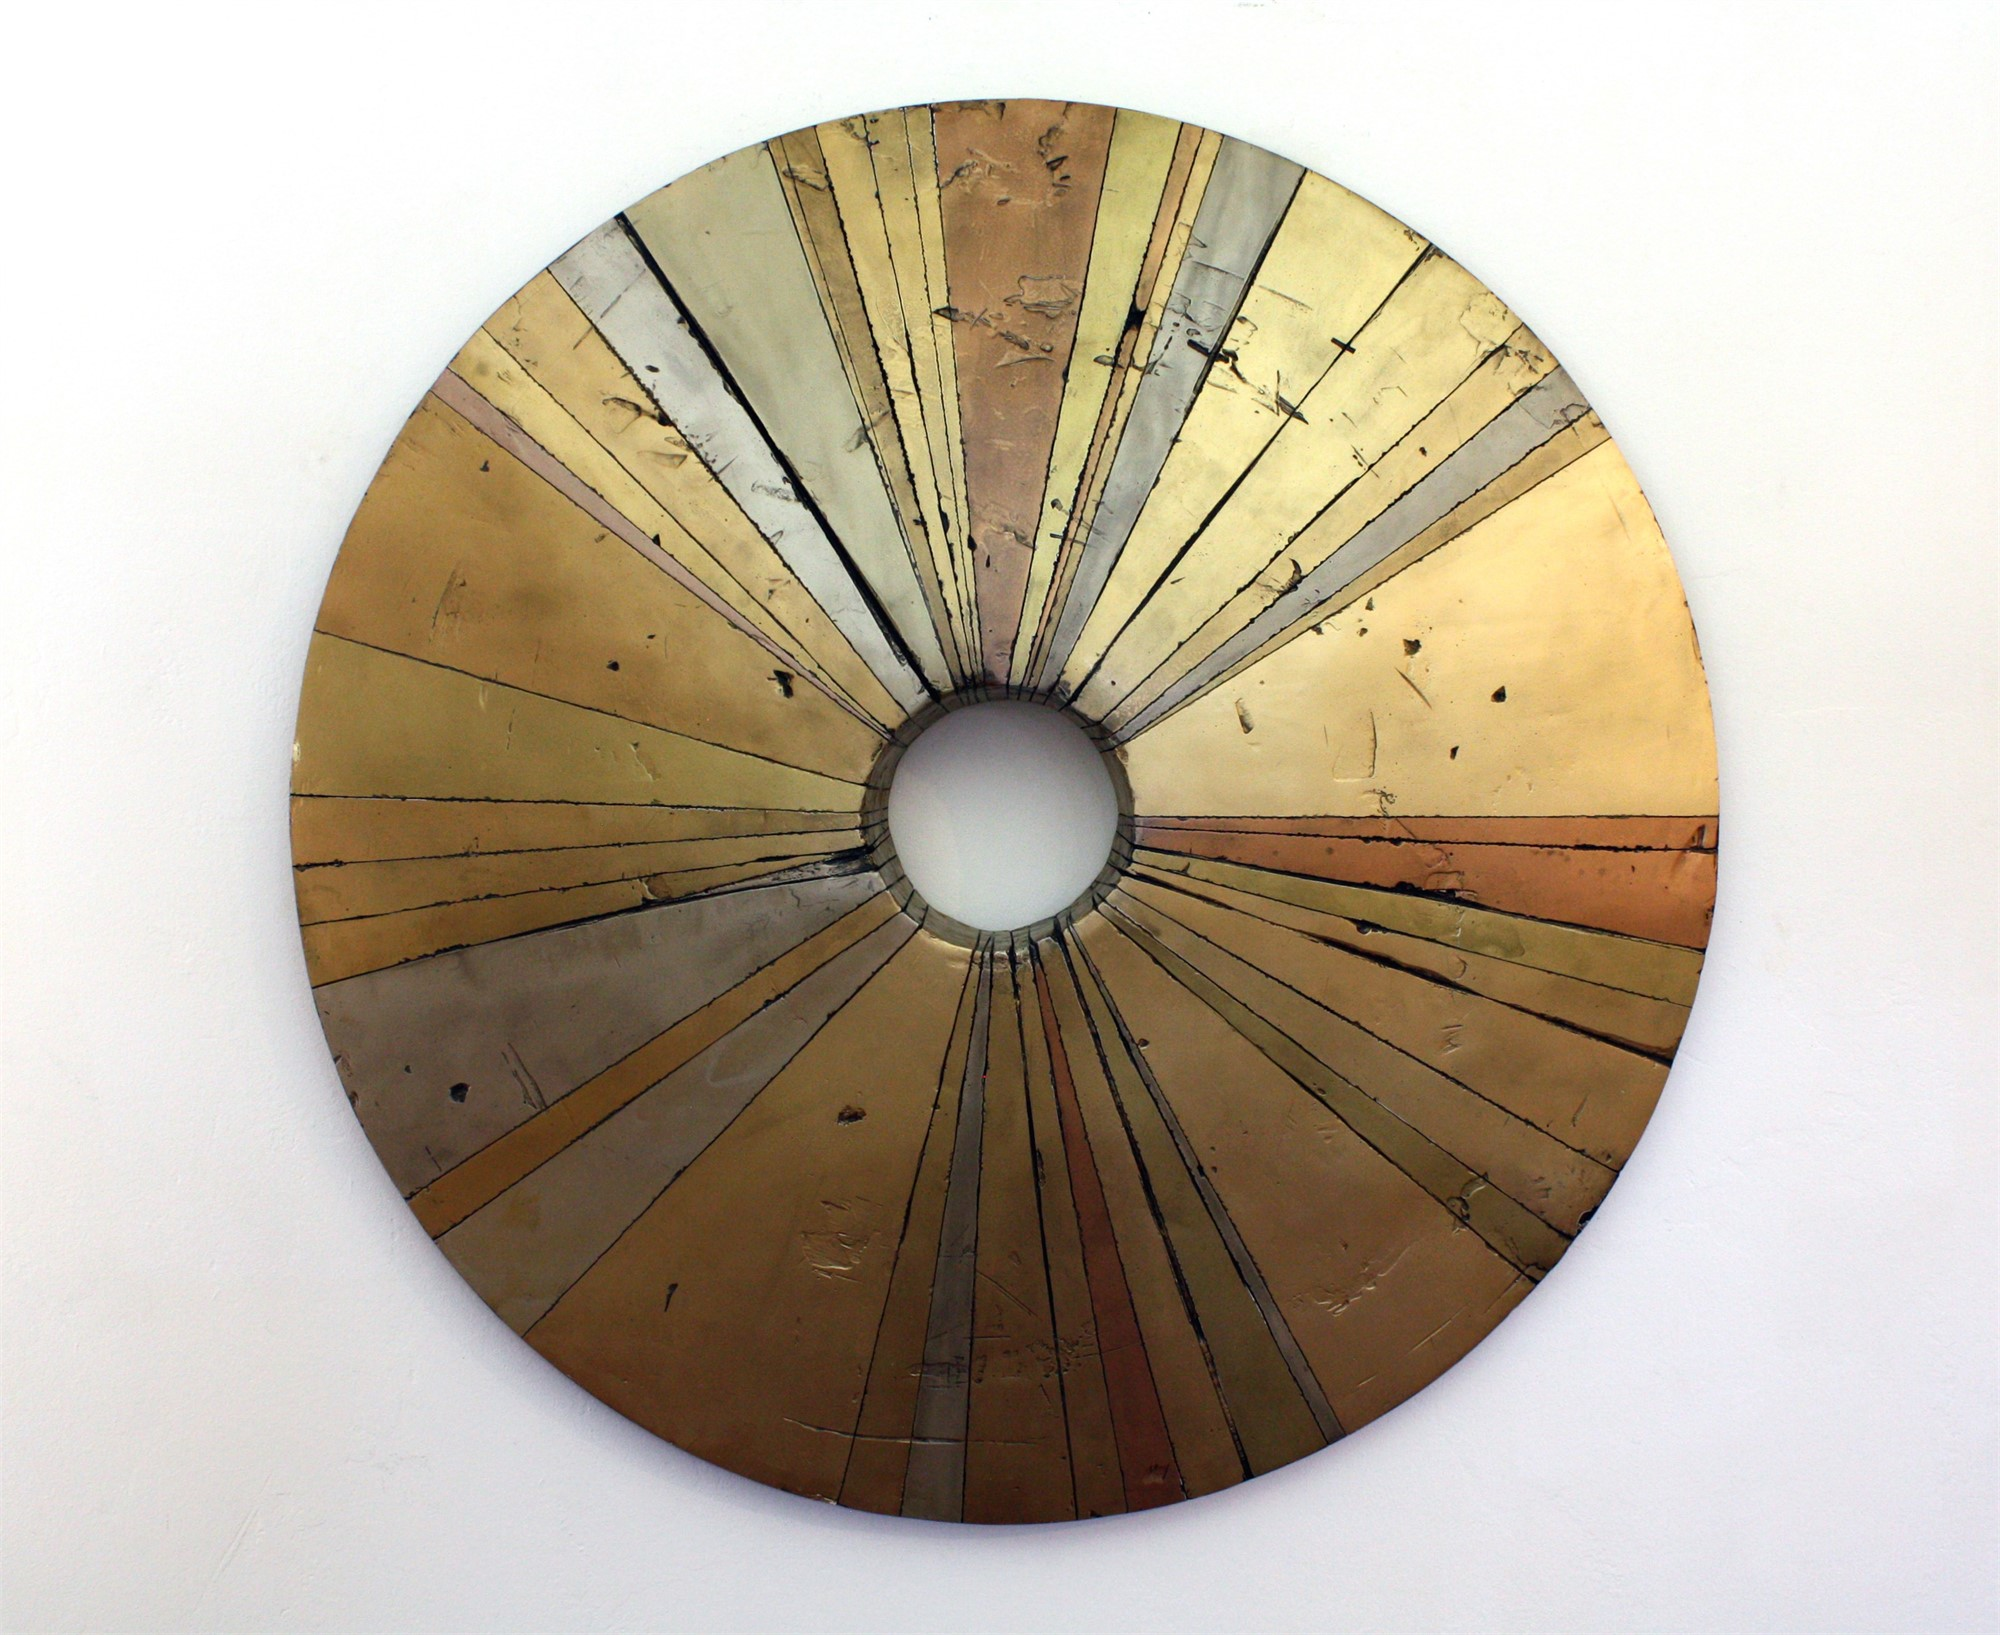 Wheel-like Object, Gold by Curtis Olson